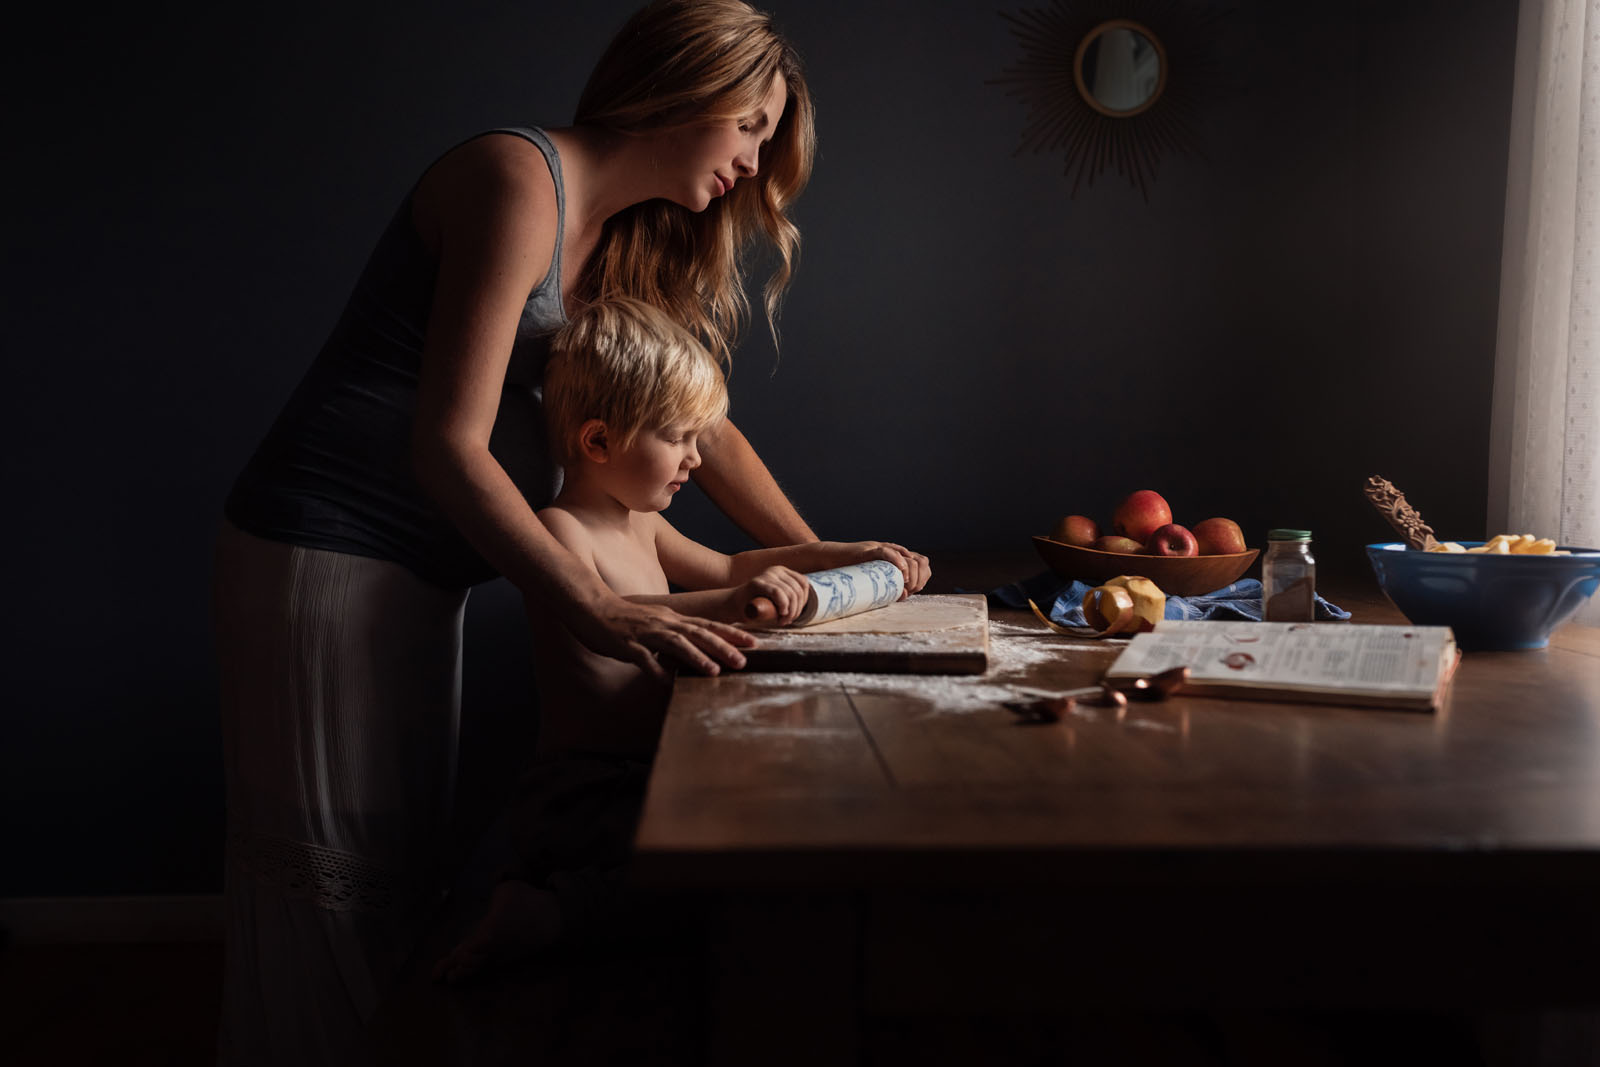 megloeks_10 mother making apple pie with small boy fall activities by meg loeks